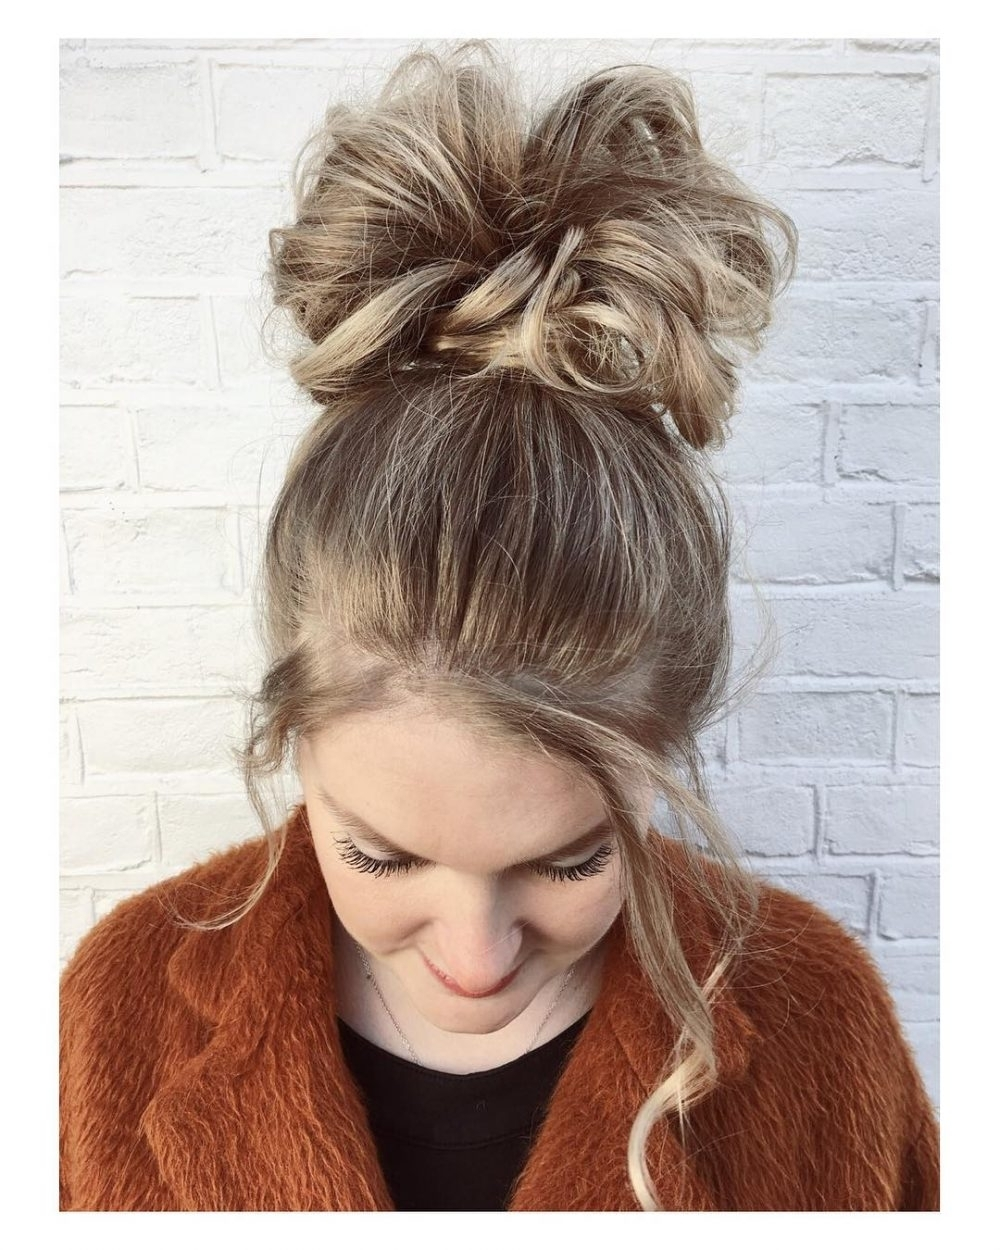 34 Easy Updos For Long Hair Trending For 2018 Intended For Updos For Long Hair With Bangs (View 2 of 15)